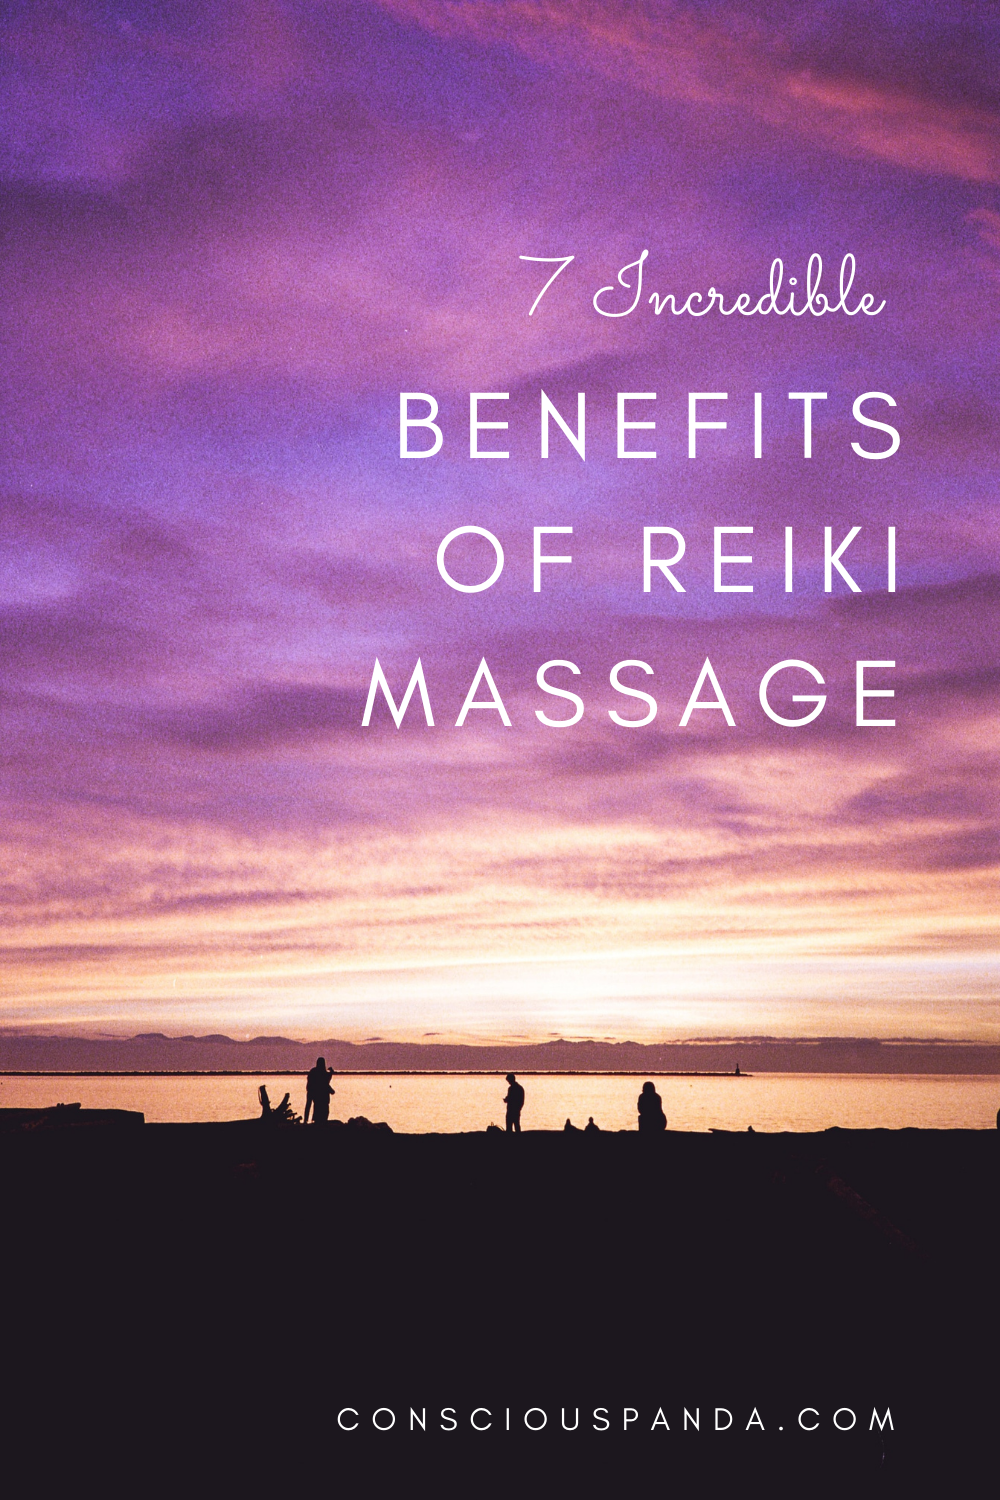 7 Incredible Benefits of Reiki Massage